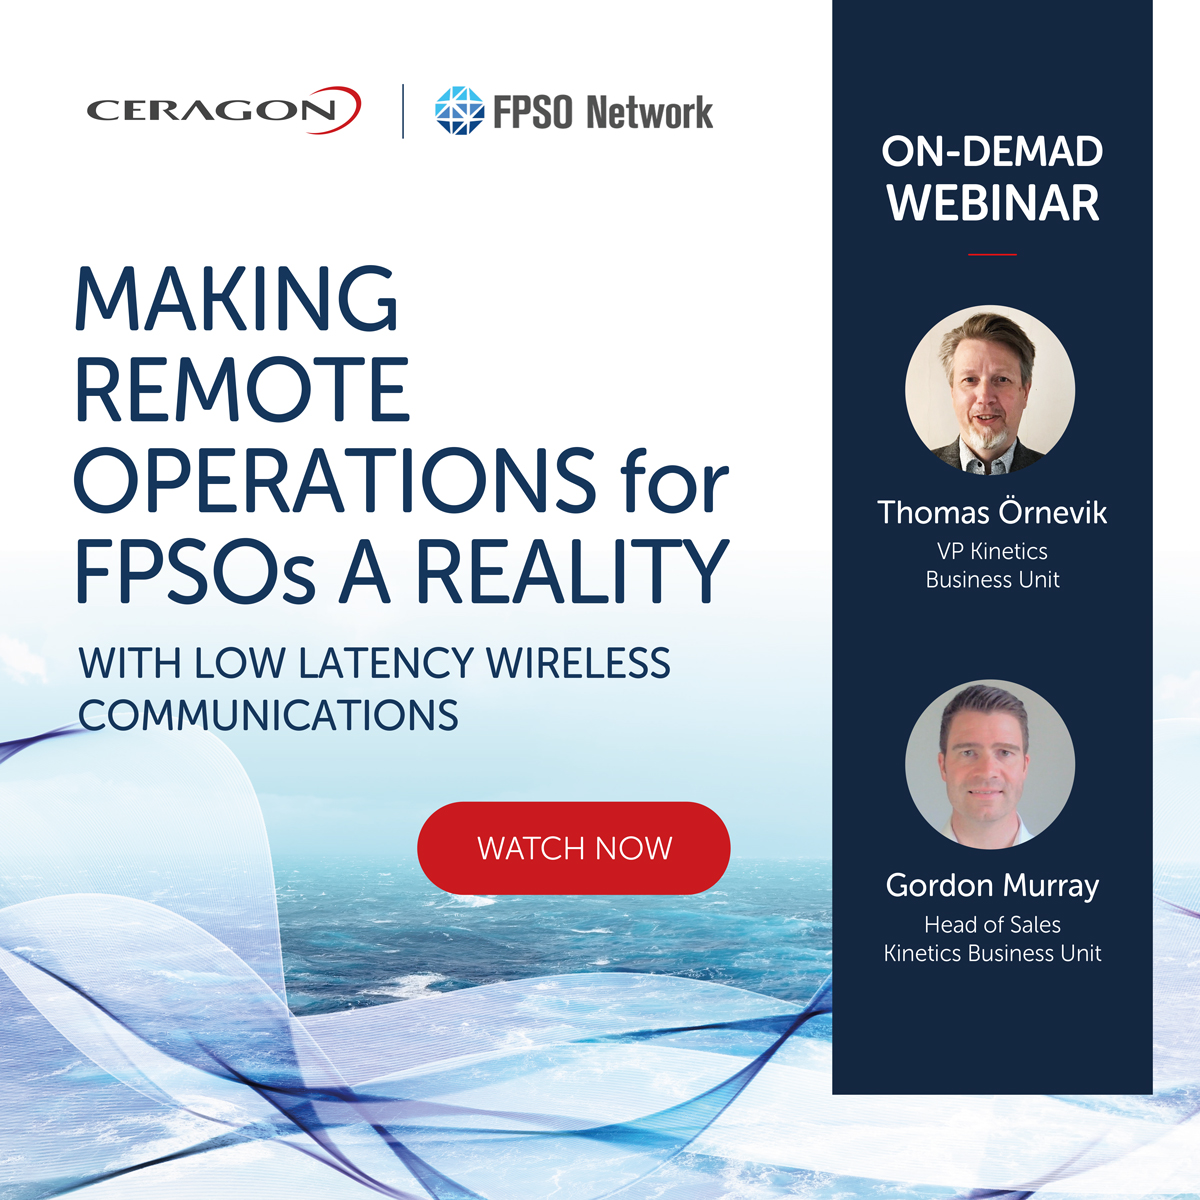 Making remote operations for FPSOs a reality with low latency wireless communications